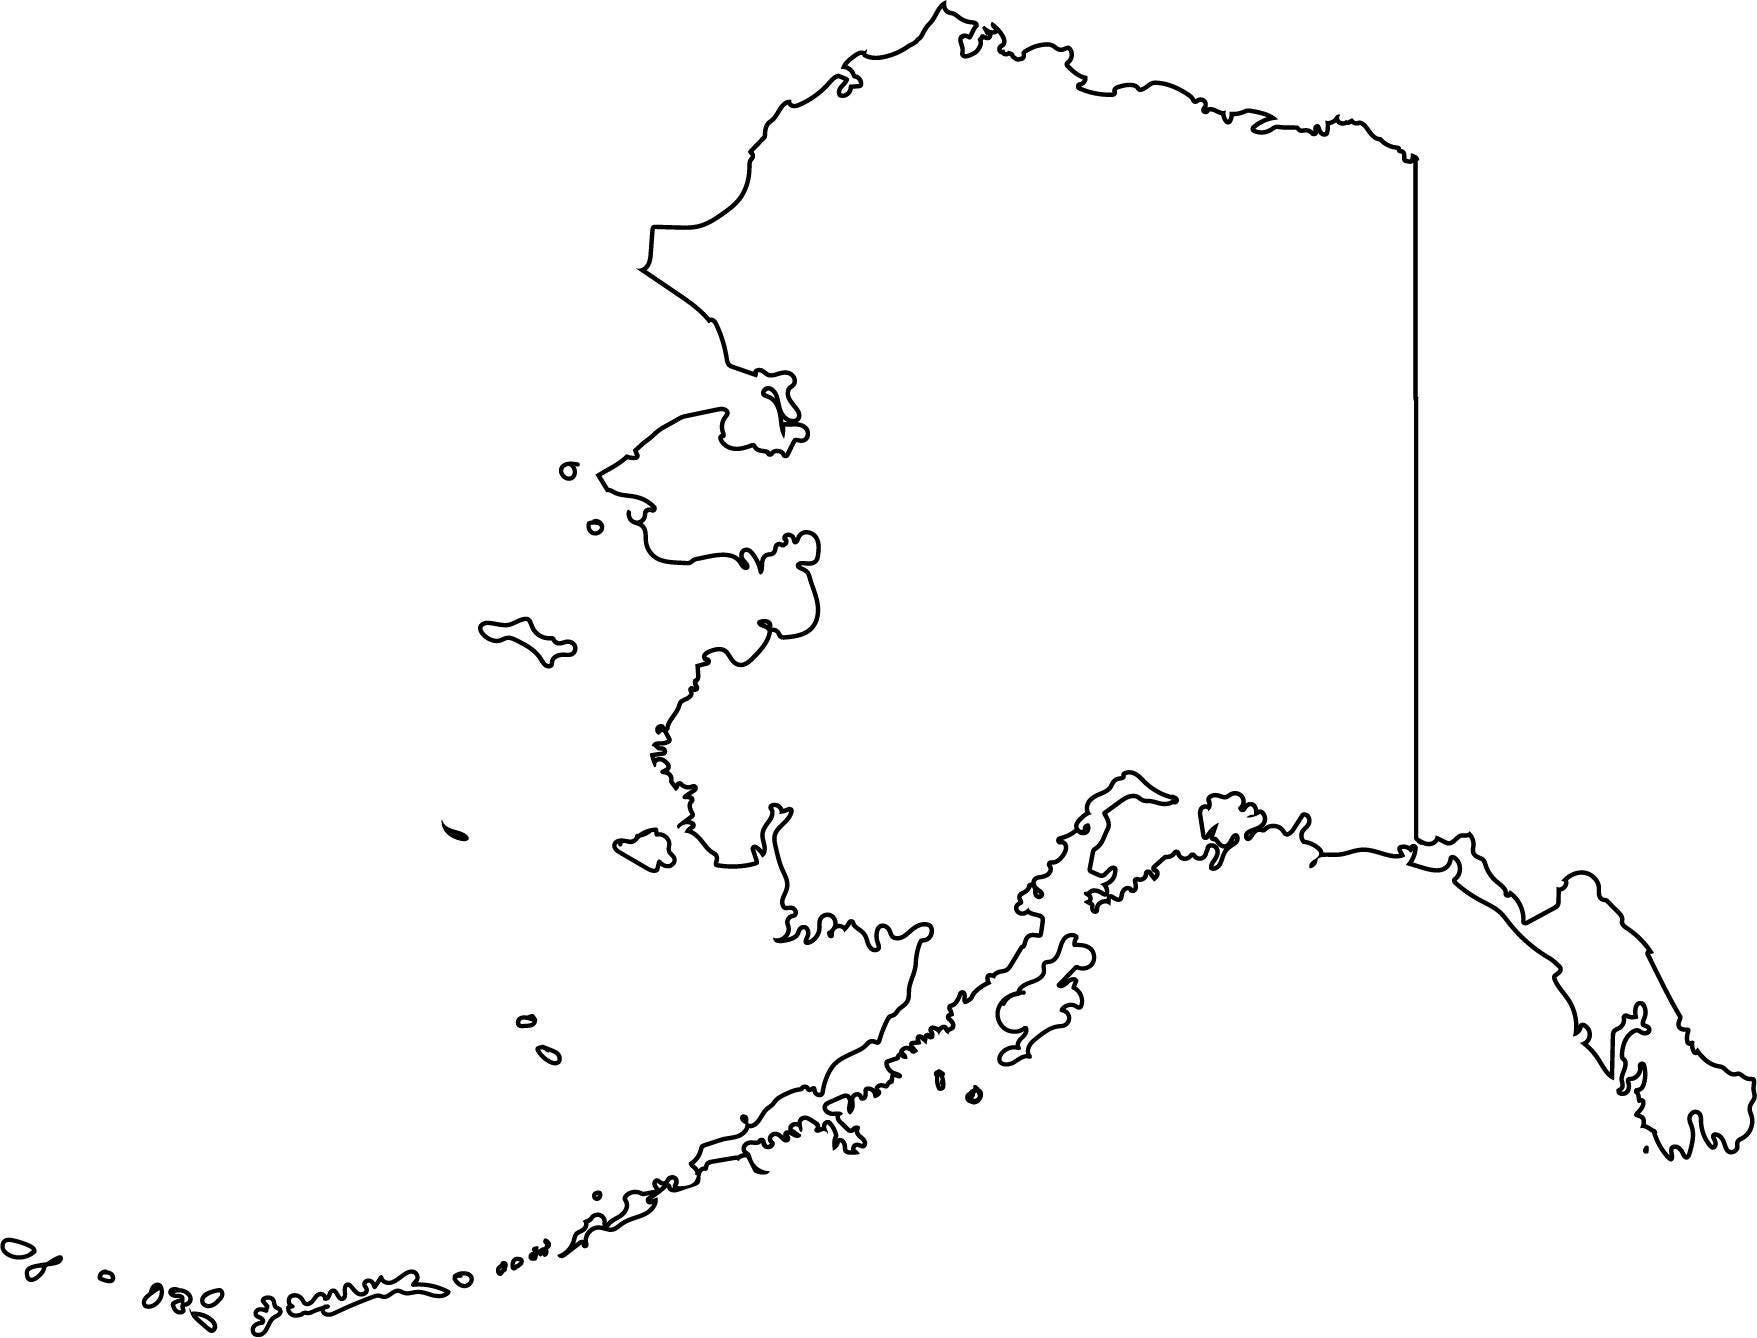 Alaska State Outline Art v2UqK13